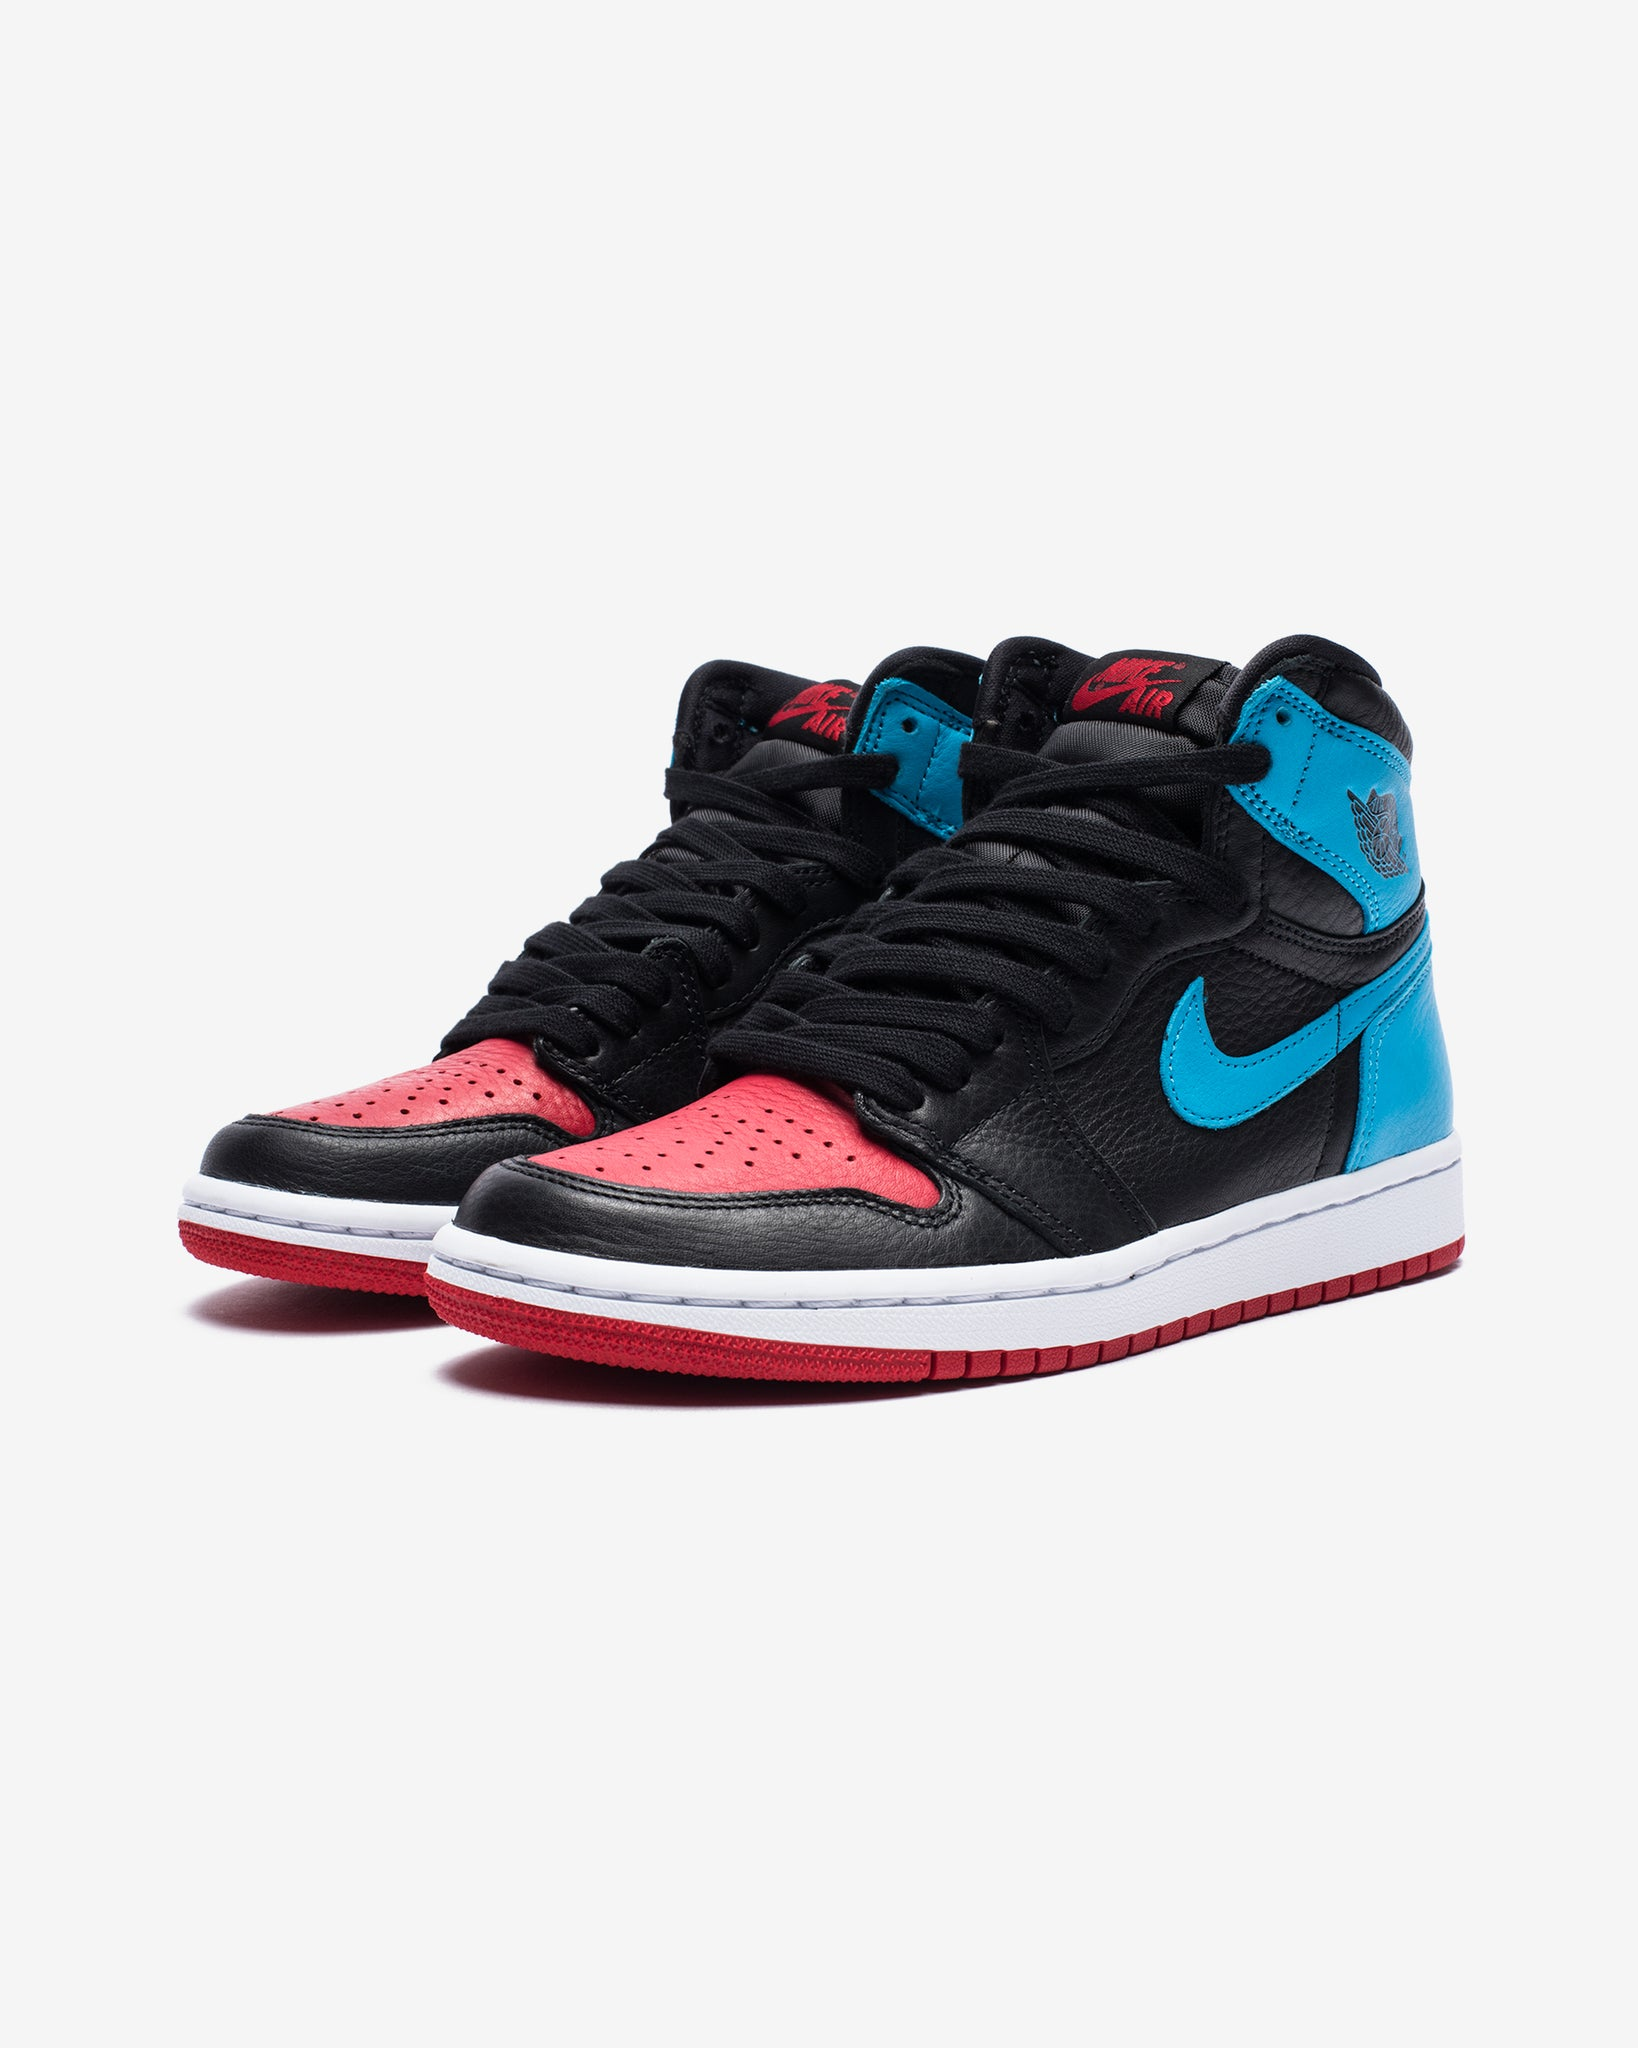 WOMEN'S AJ 1 HIGH OG - BLACK/DKPOWDERBLUE/GYMRED